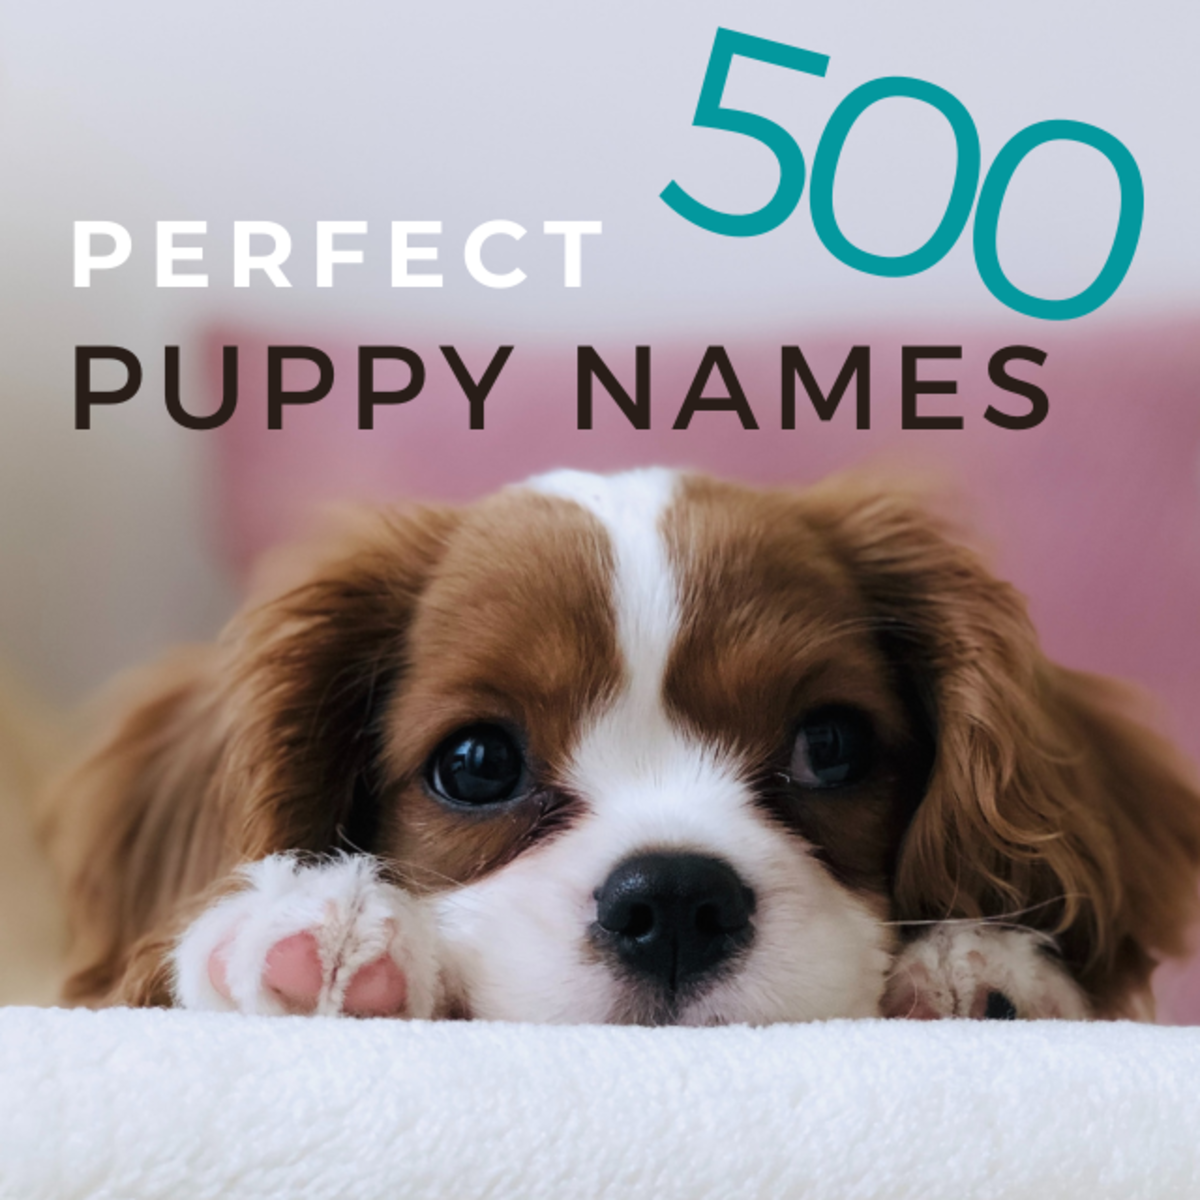 500 Perfect Puppy Names